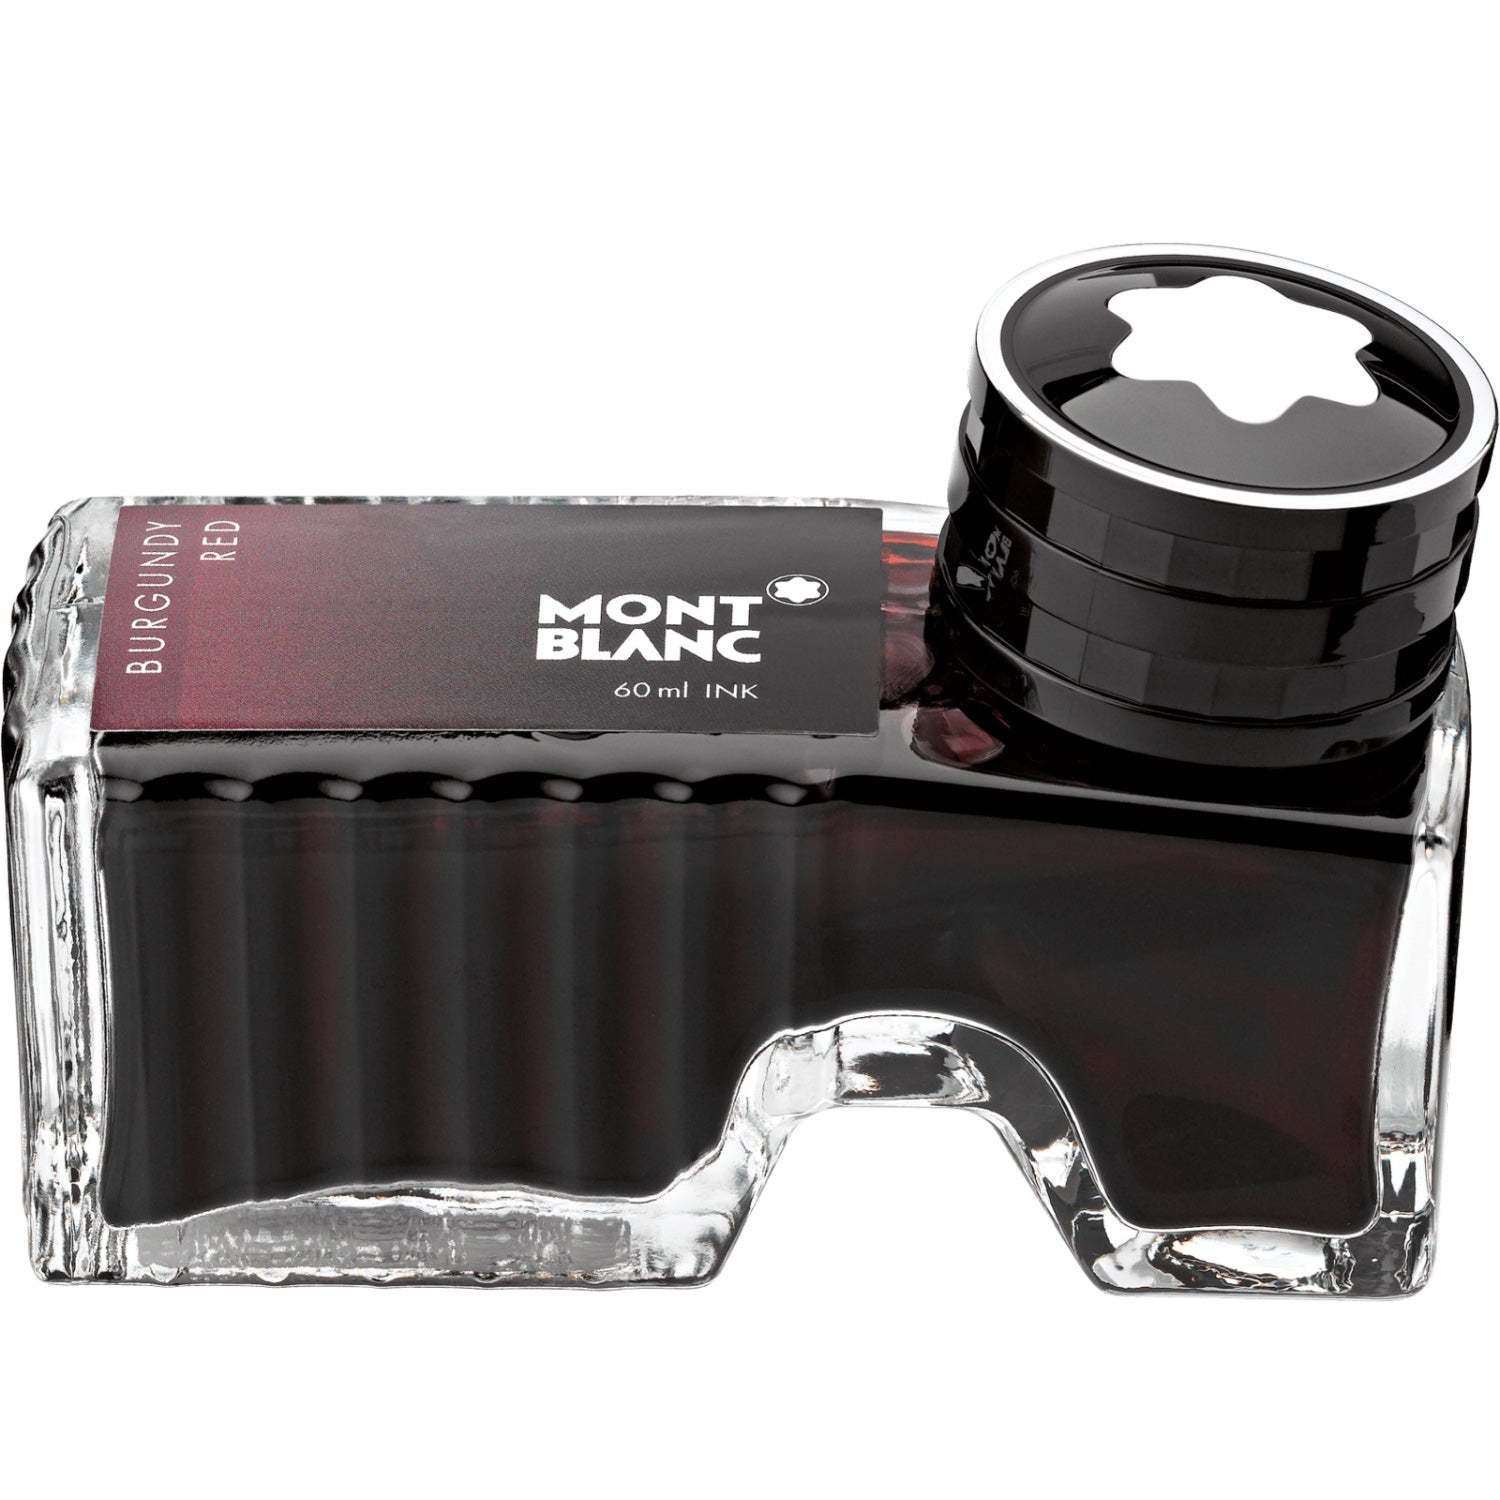 Montblanc Burgundy Red 60ml Ink Bottle Refill